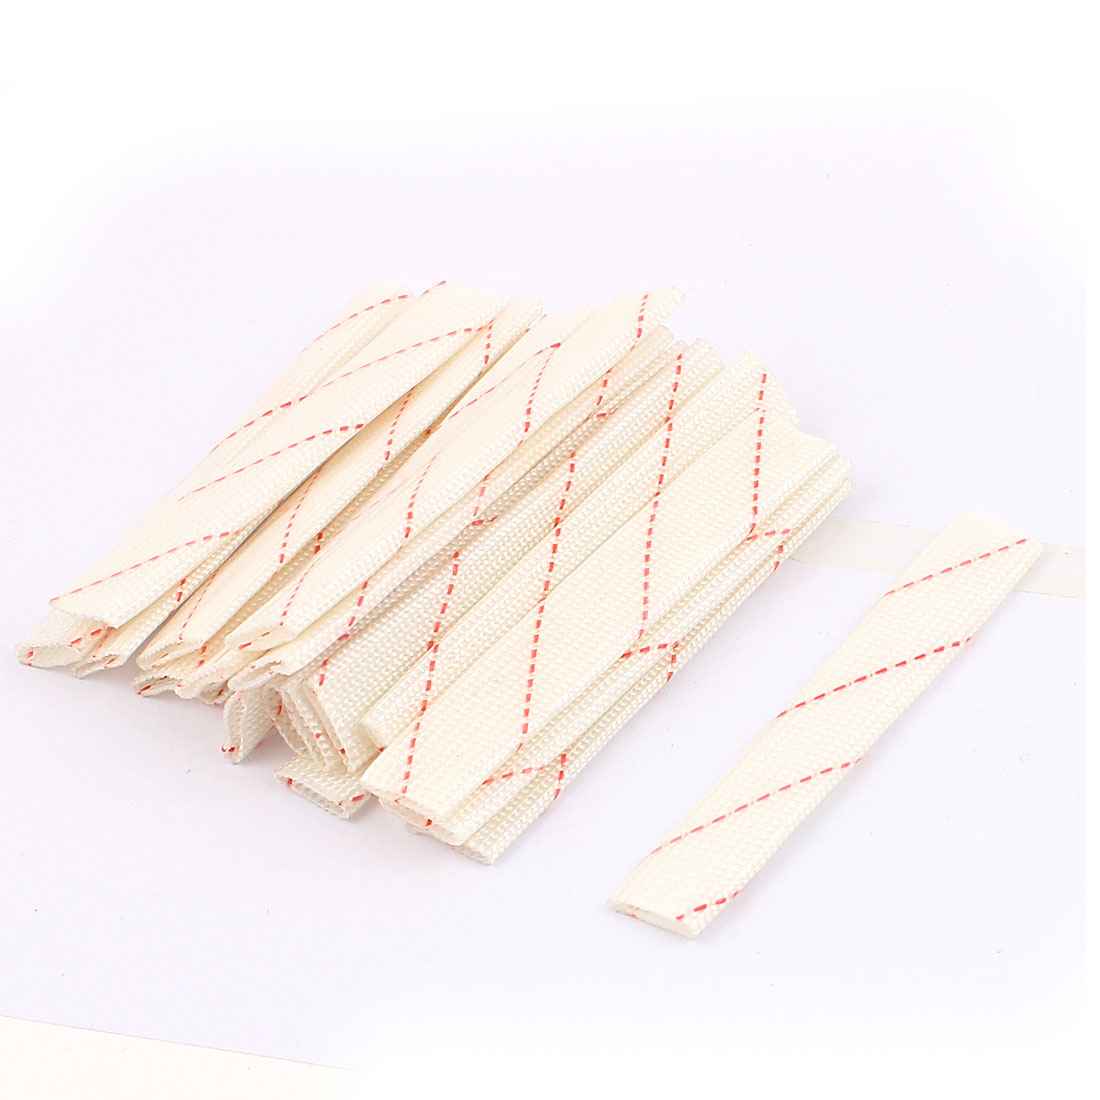 20 Pcs 10mm Electrical Wire Fiberglass Insulation Sleeving 10cm